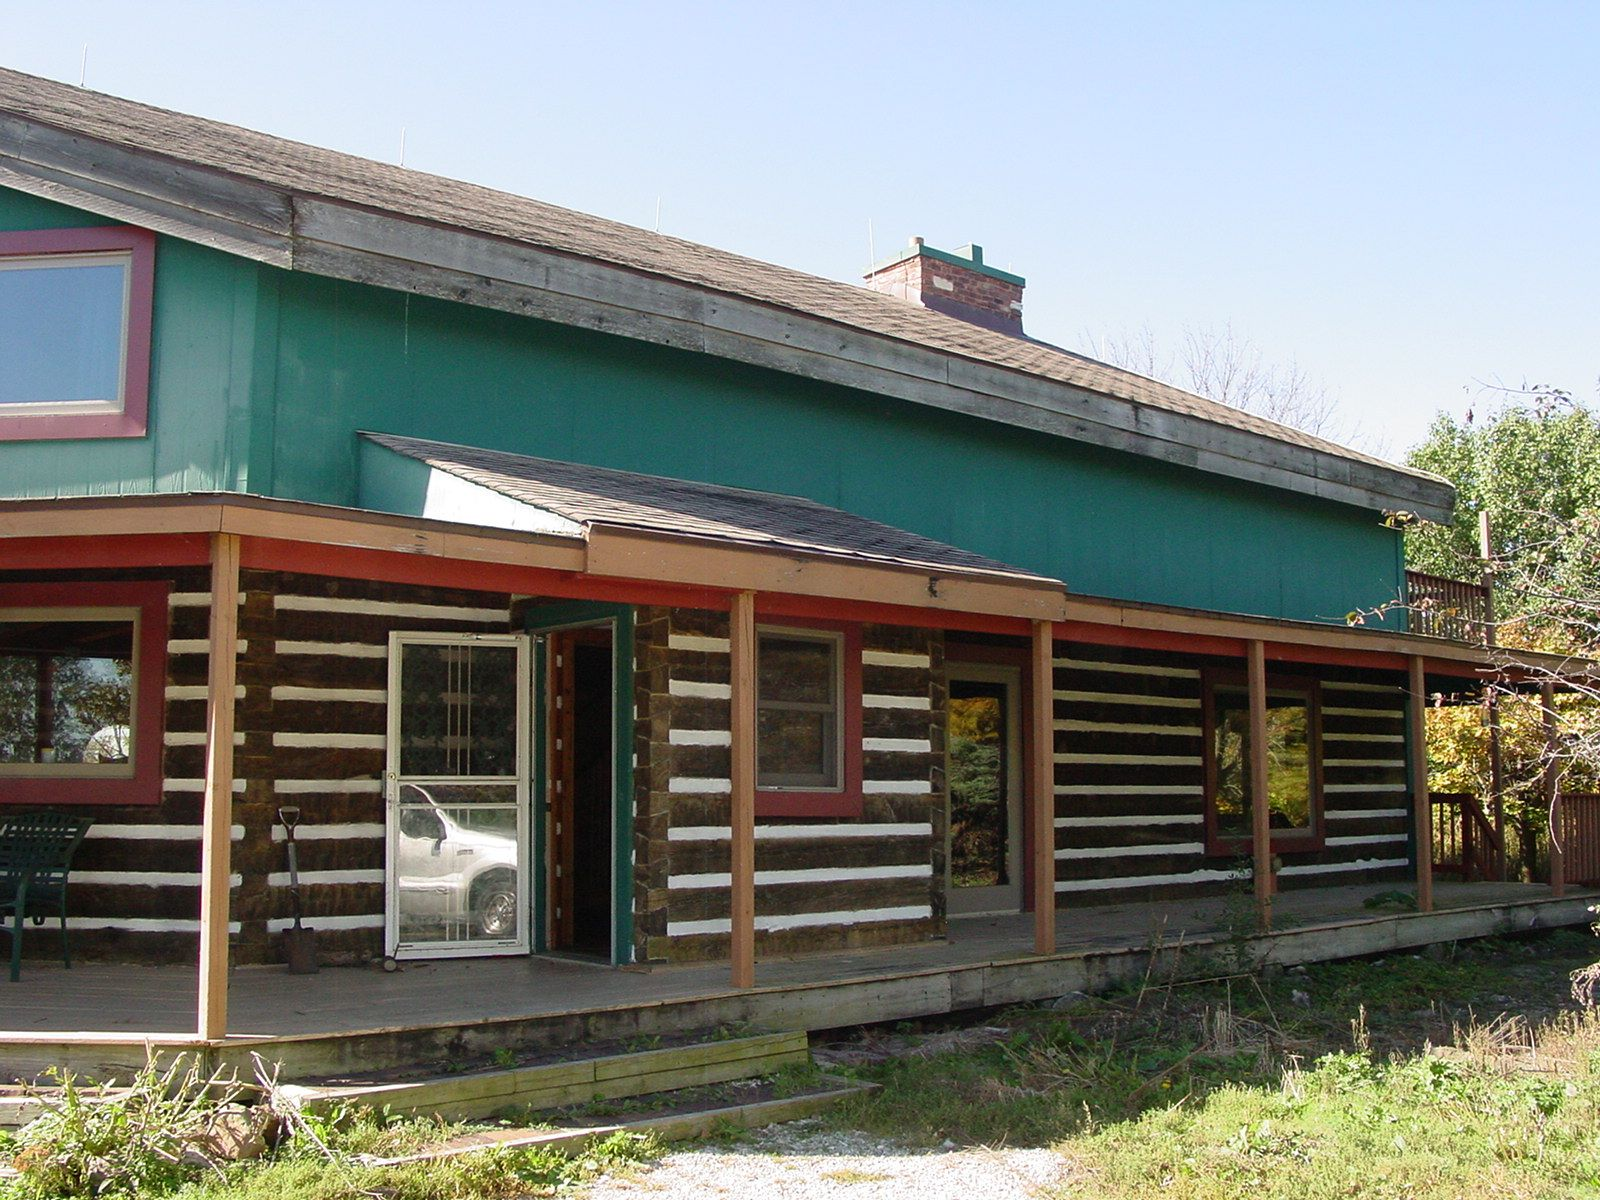 for sale to be moved or dismantled | log home must be moved